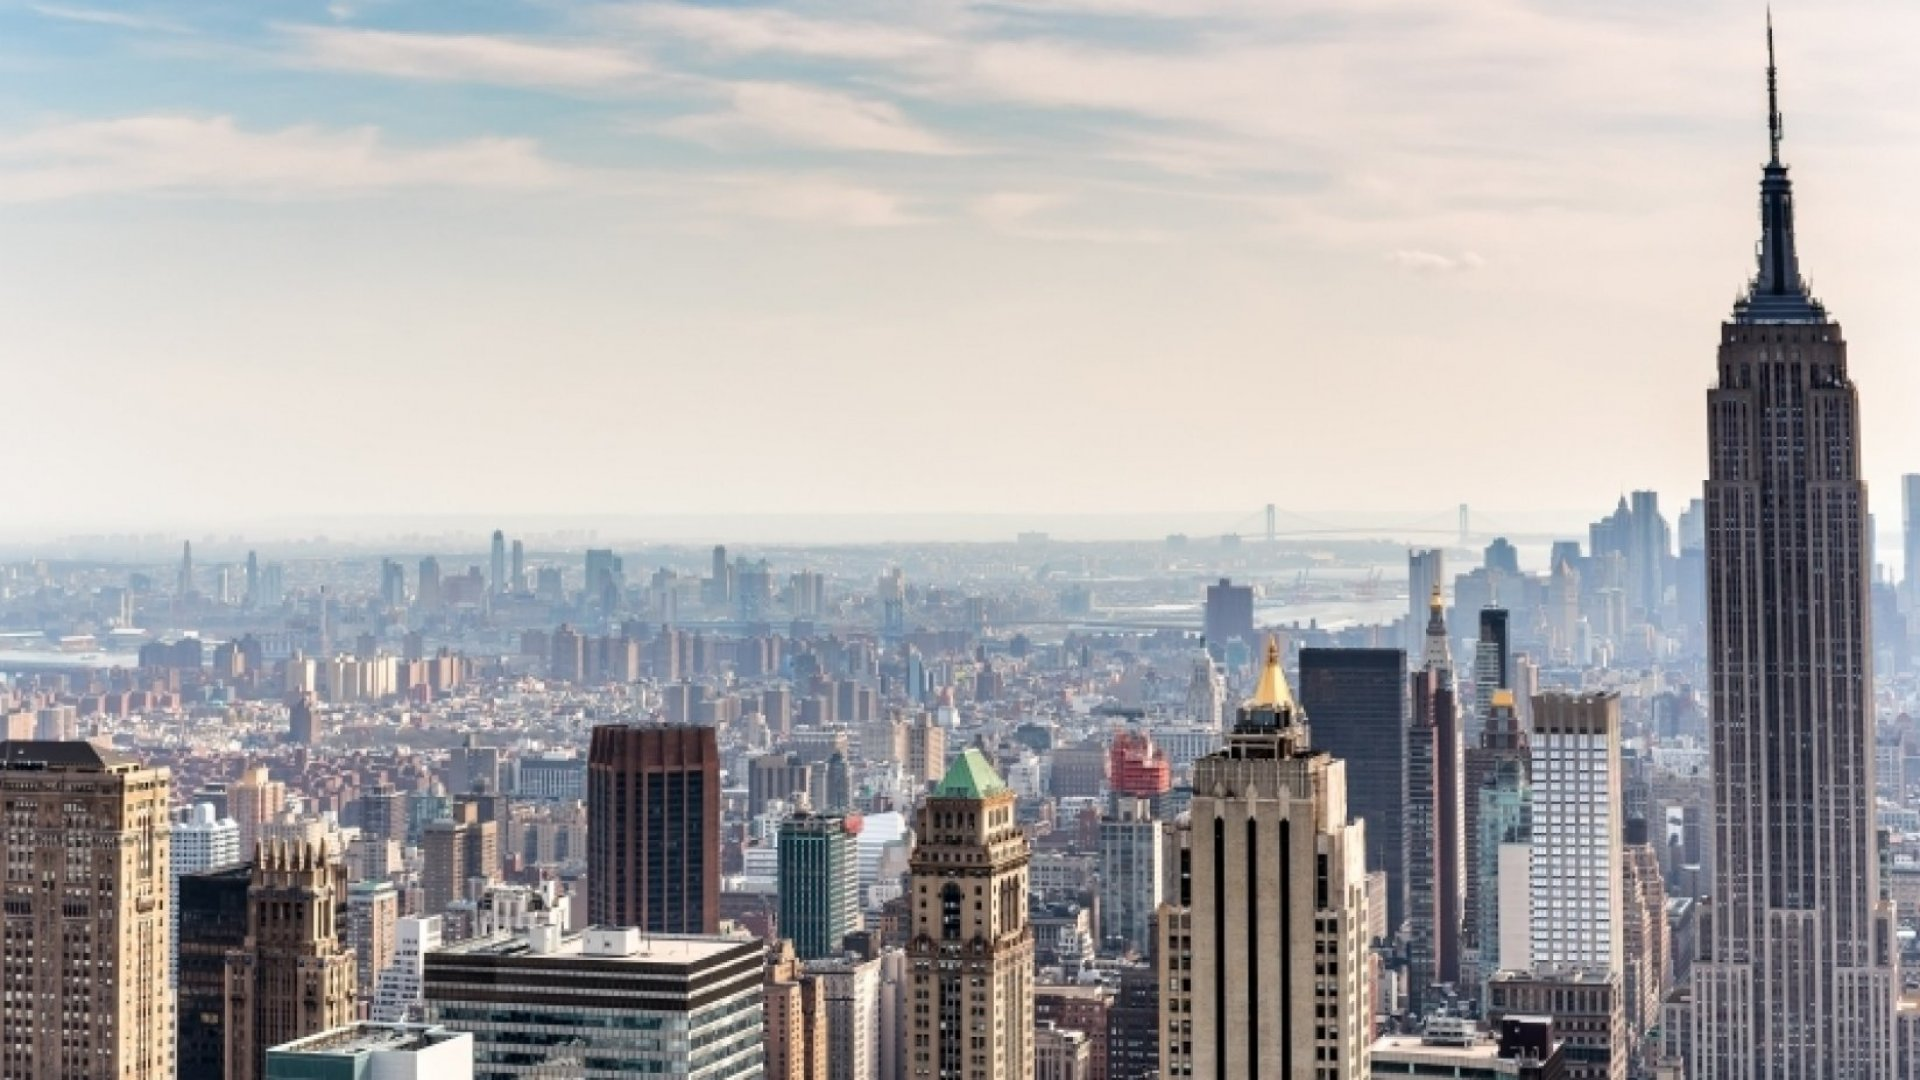 Silicon Valley vs. New York: How Does Startup Culture Differ?